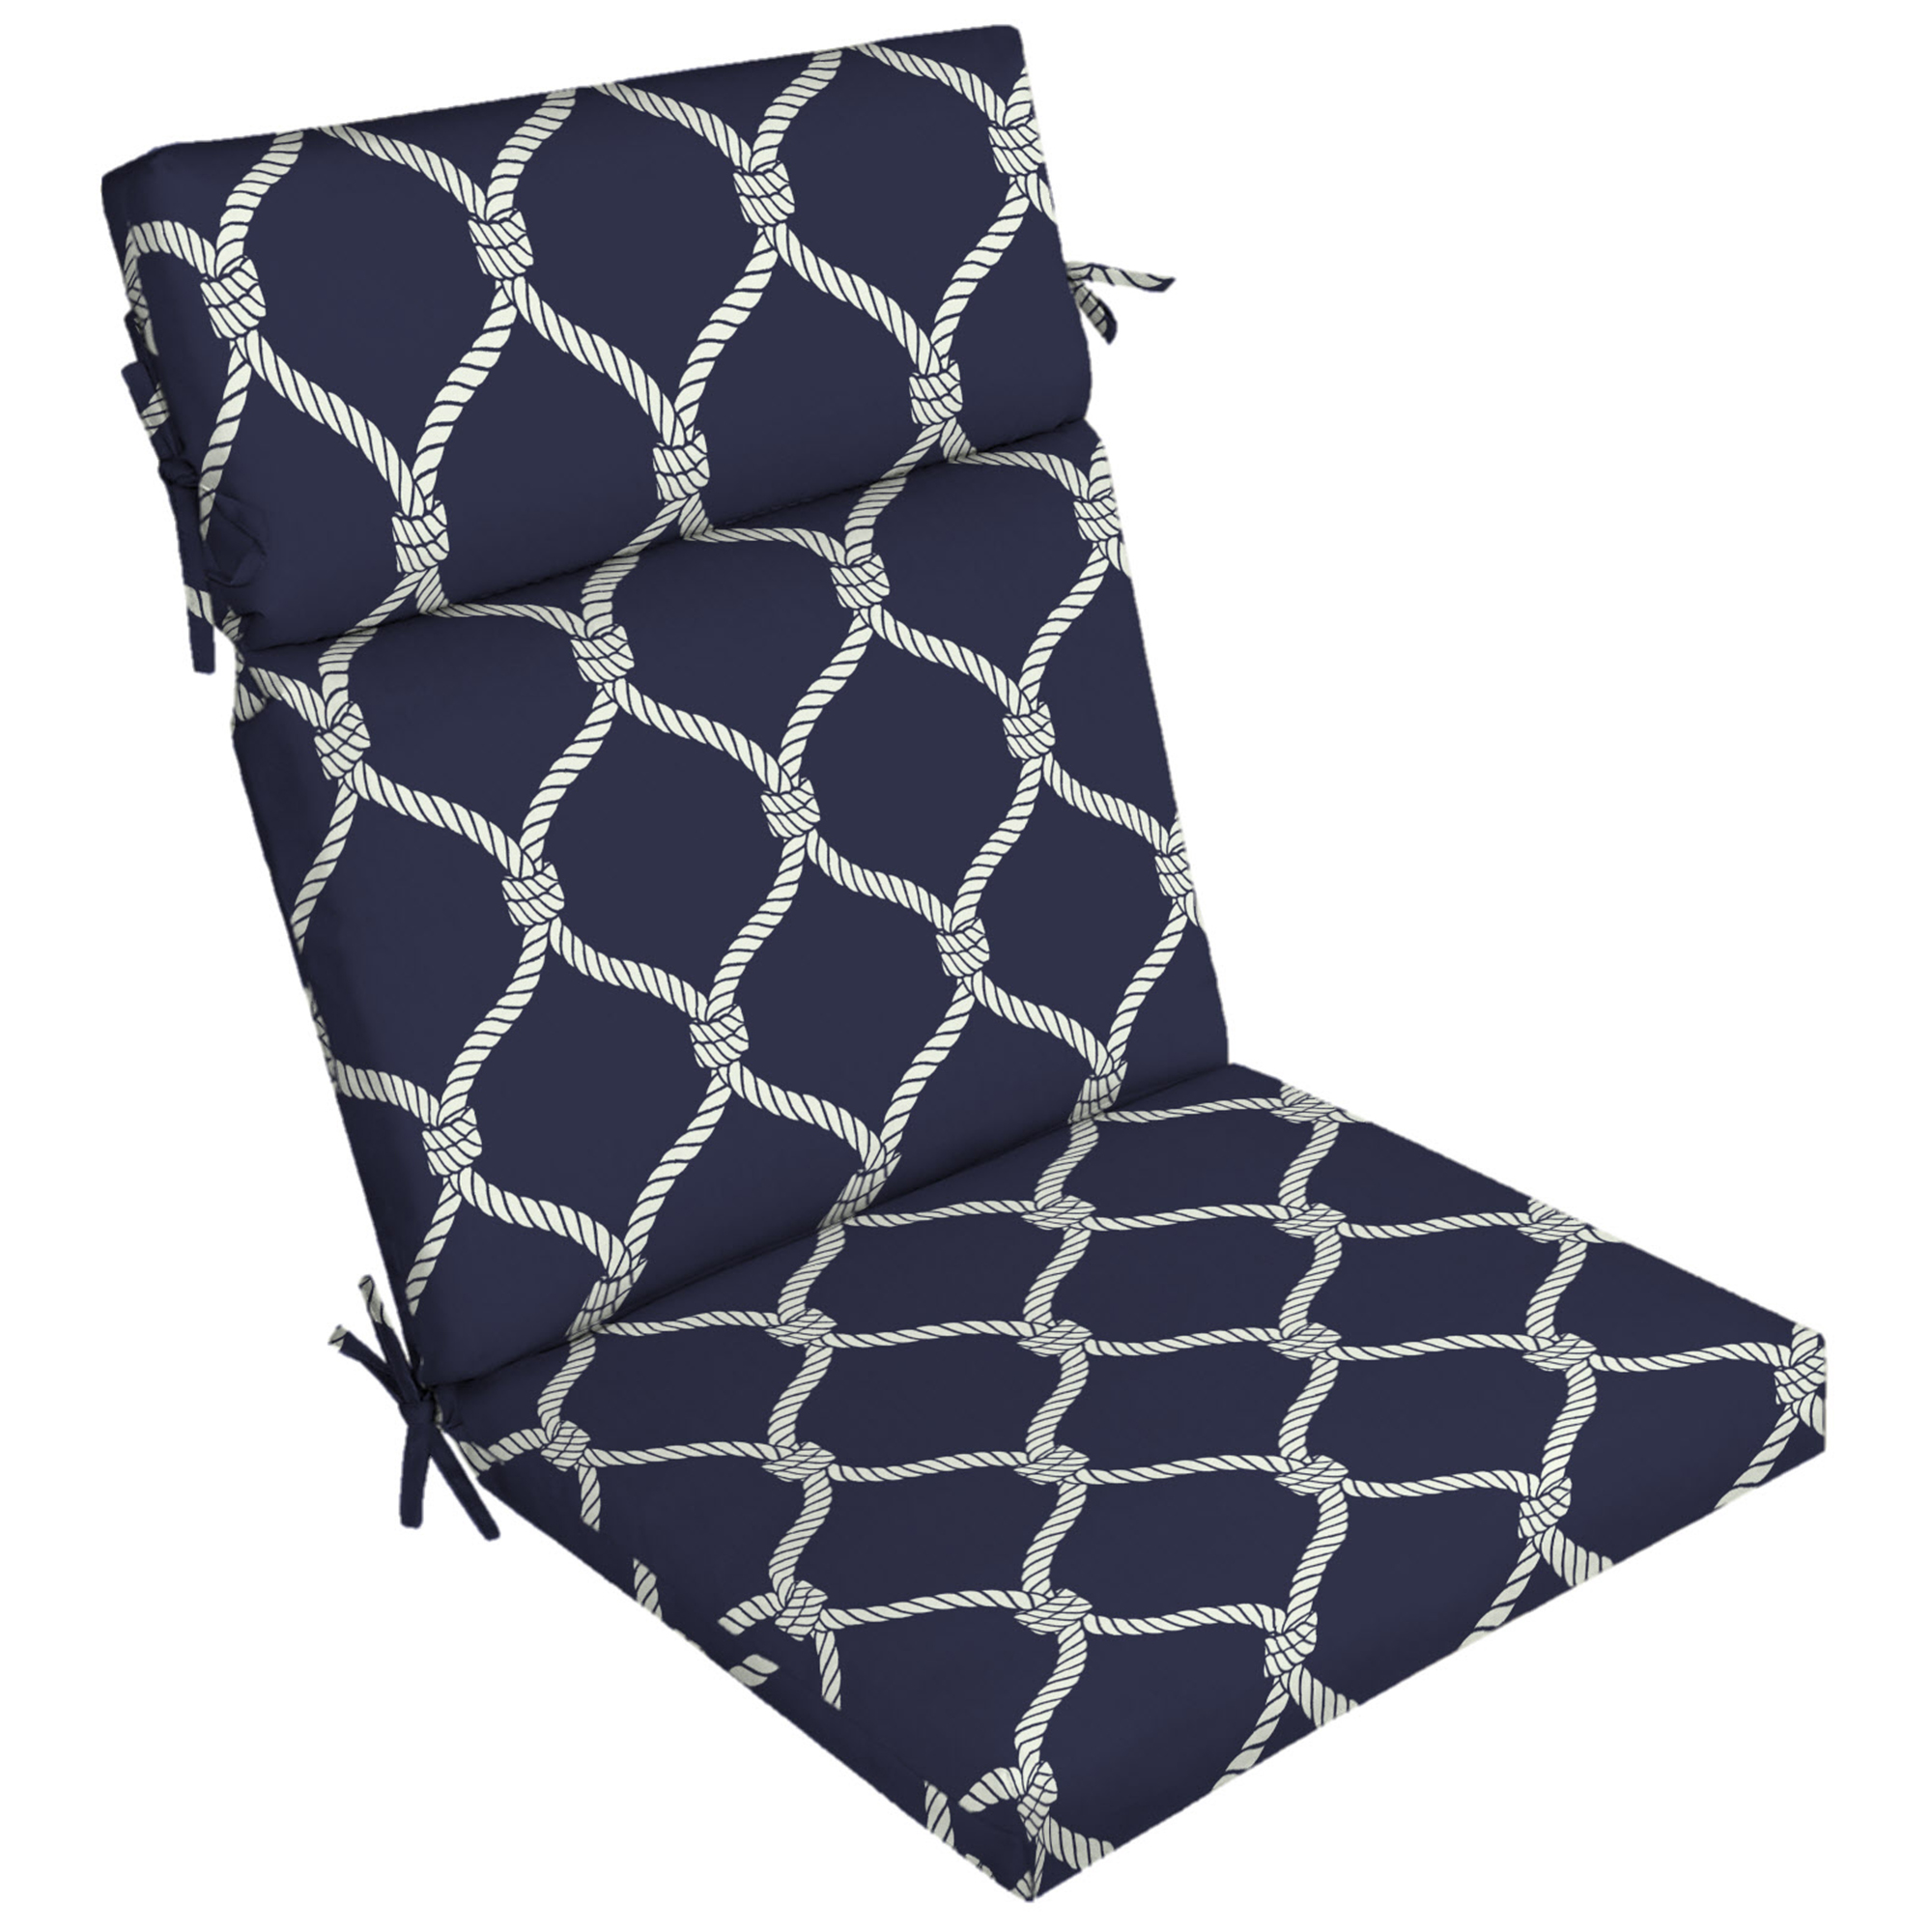 Better Homes And Gardens Nautical Rope Outdoor Dining Chair Cushion